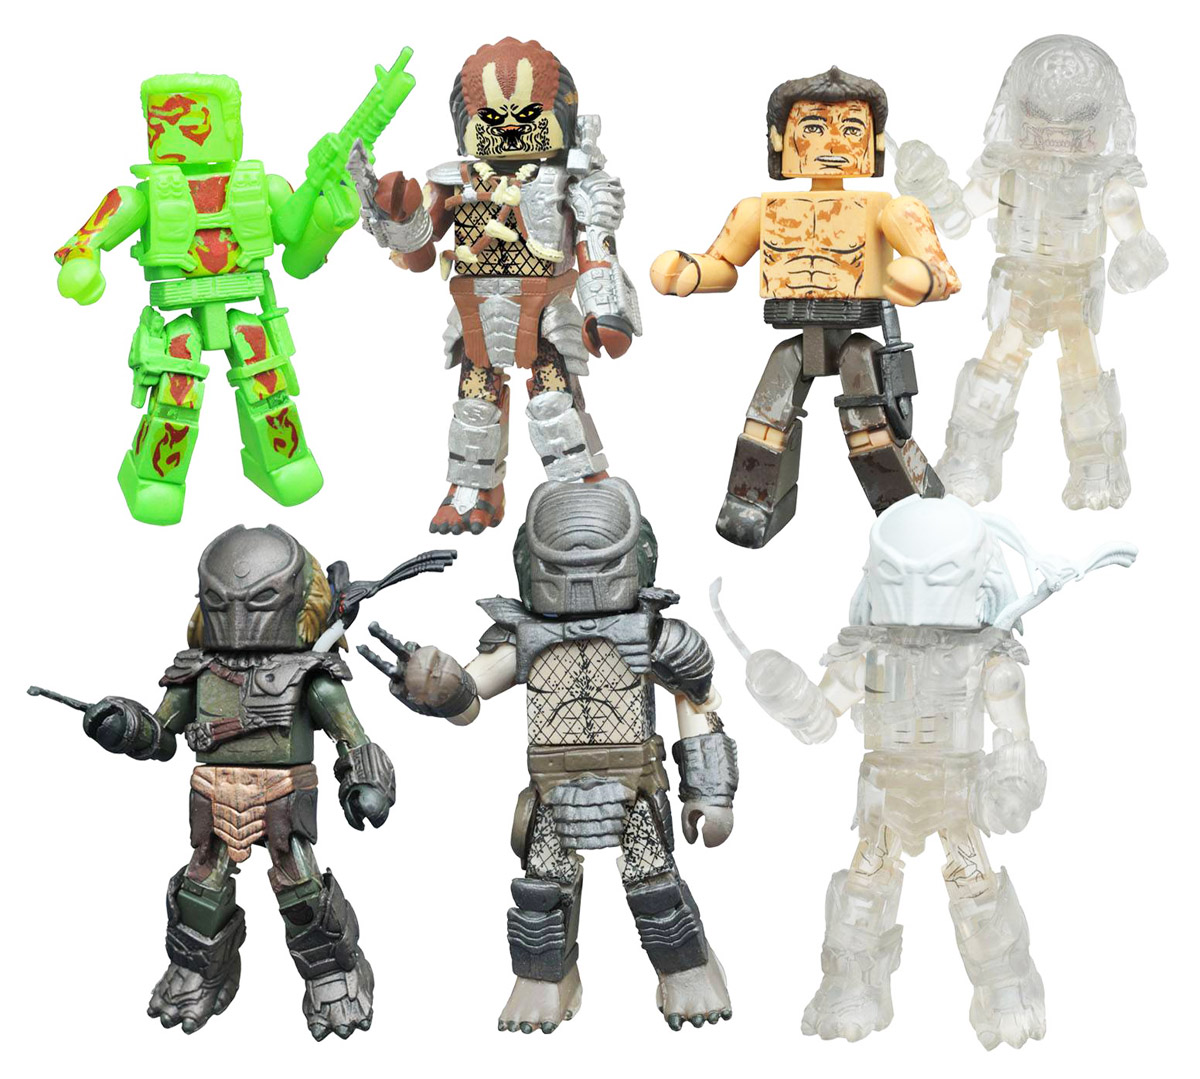 Predator Minimates Series 3 Full Set of 8